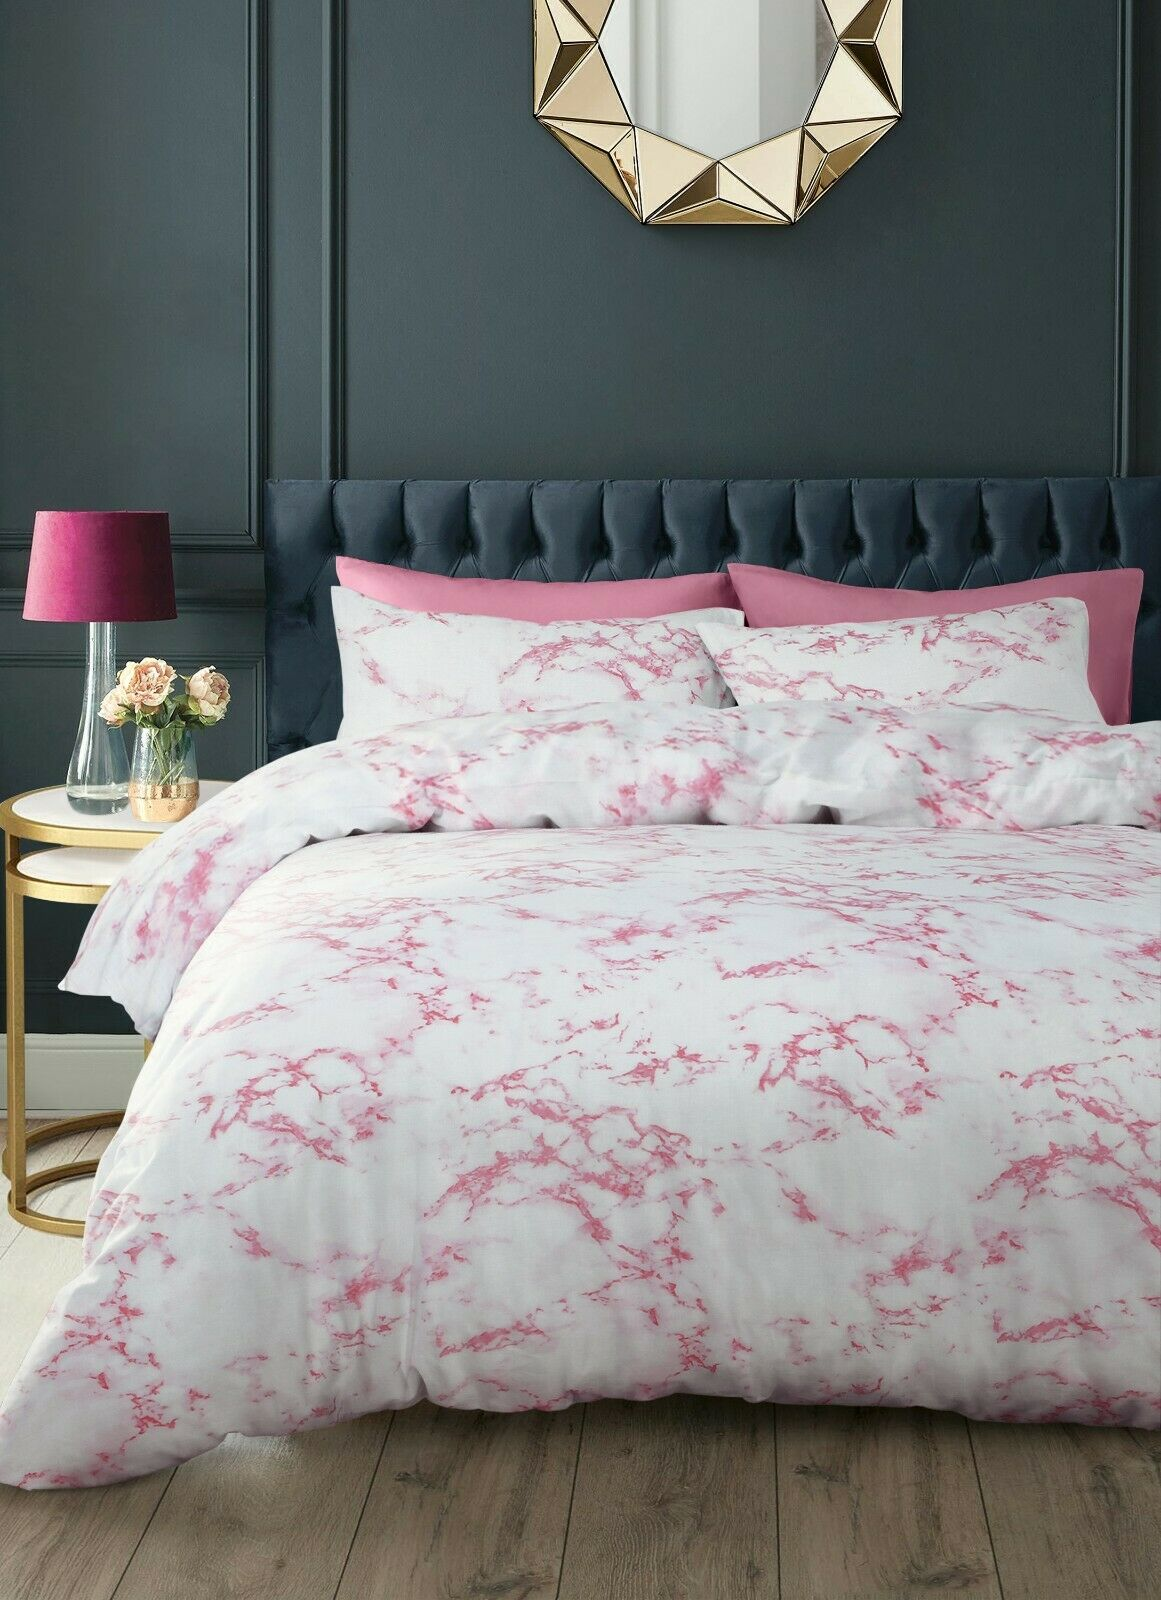 Pink White Marble Effect Stylish Printed Bedding Duvet Cover Pillowcase Set